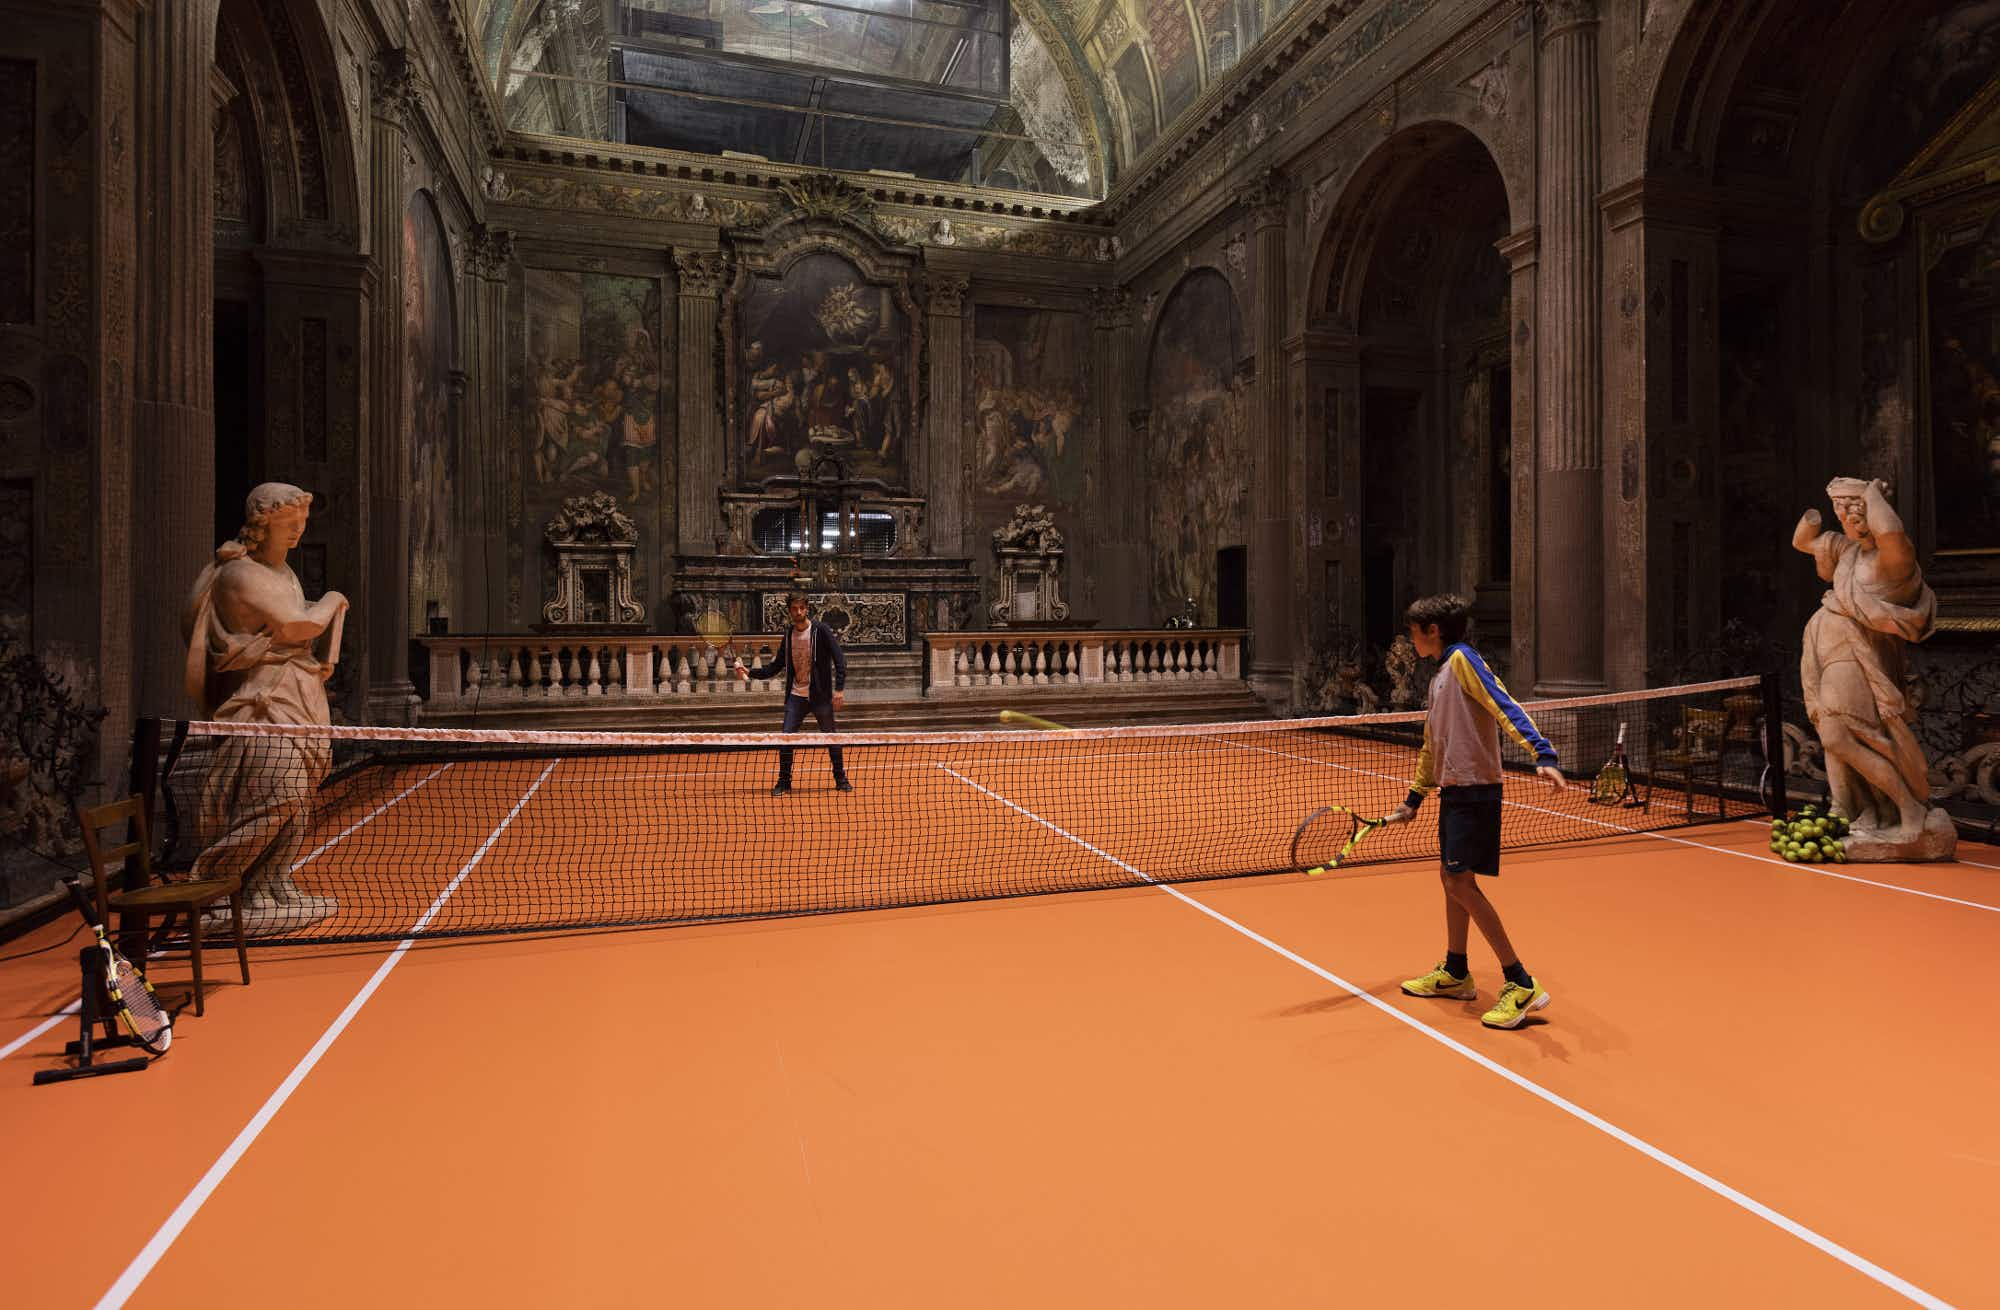 Practice your serve at a tennis court inside a 16th century church in Milan